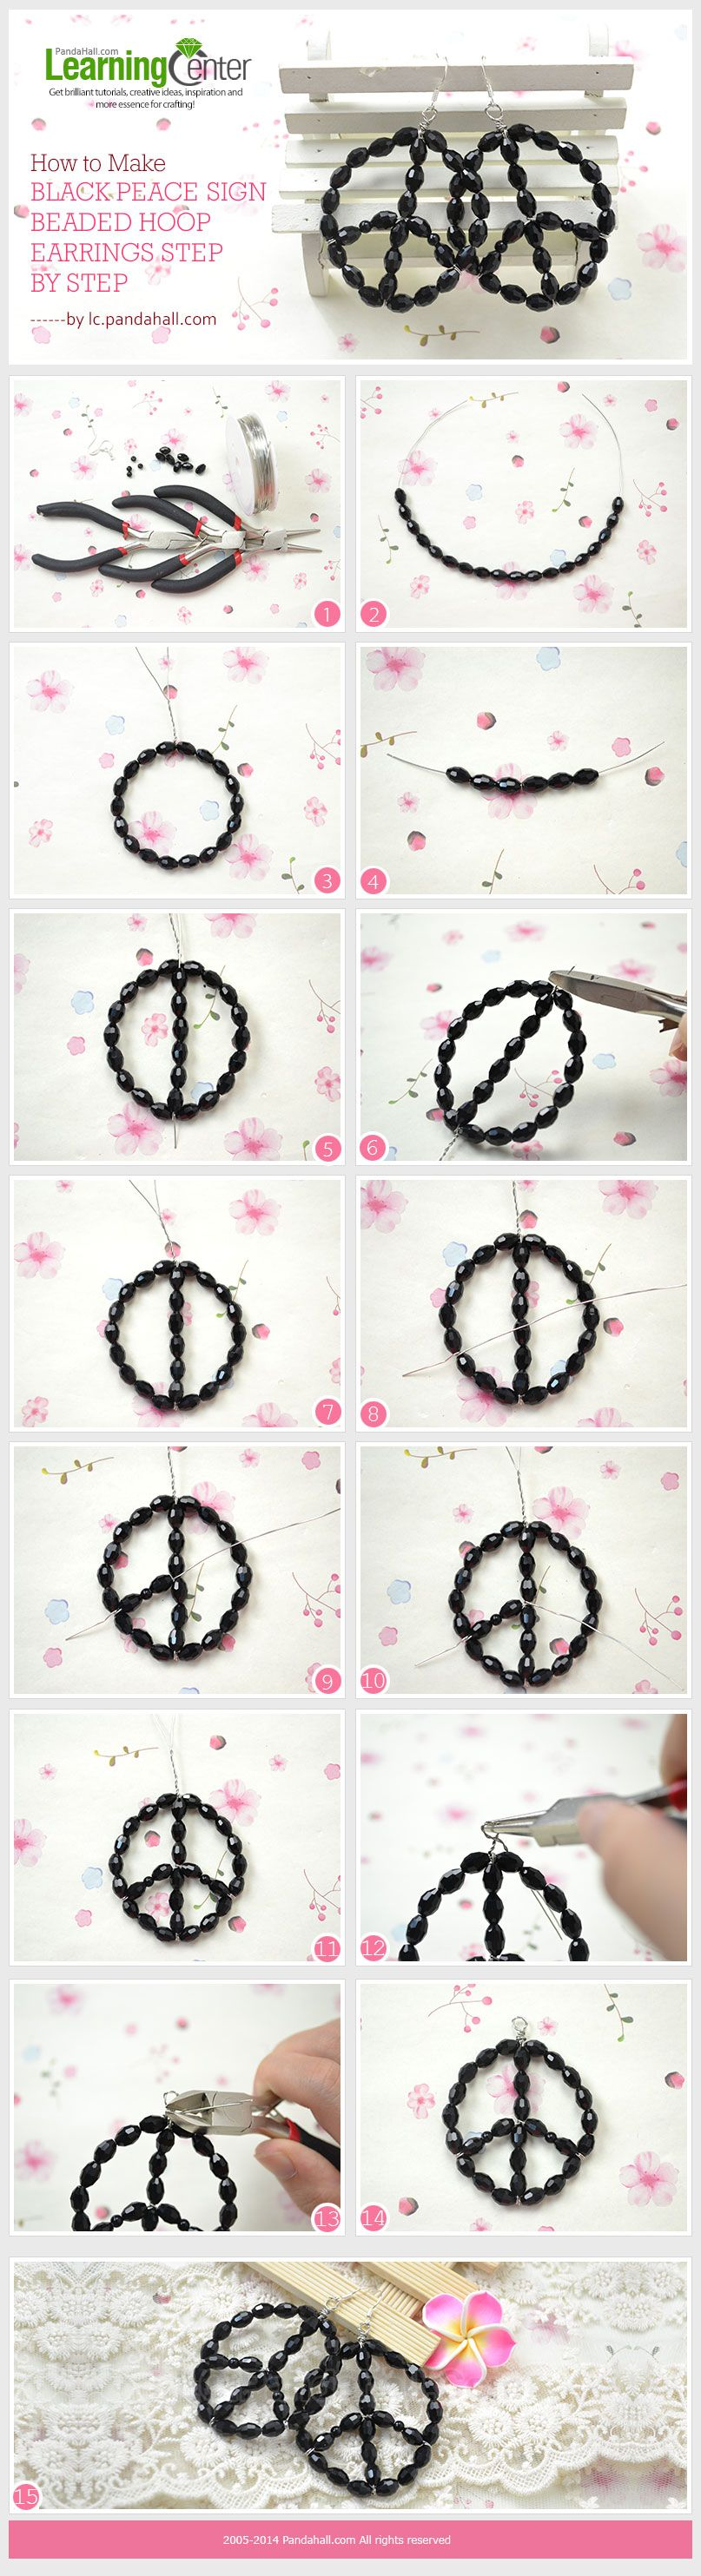 How to Make Black Peace Sign Beaded Hoop Earrings Step by